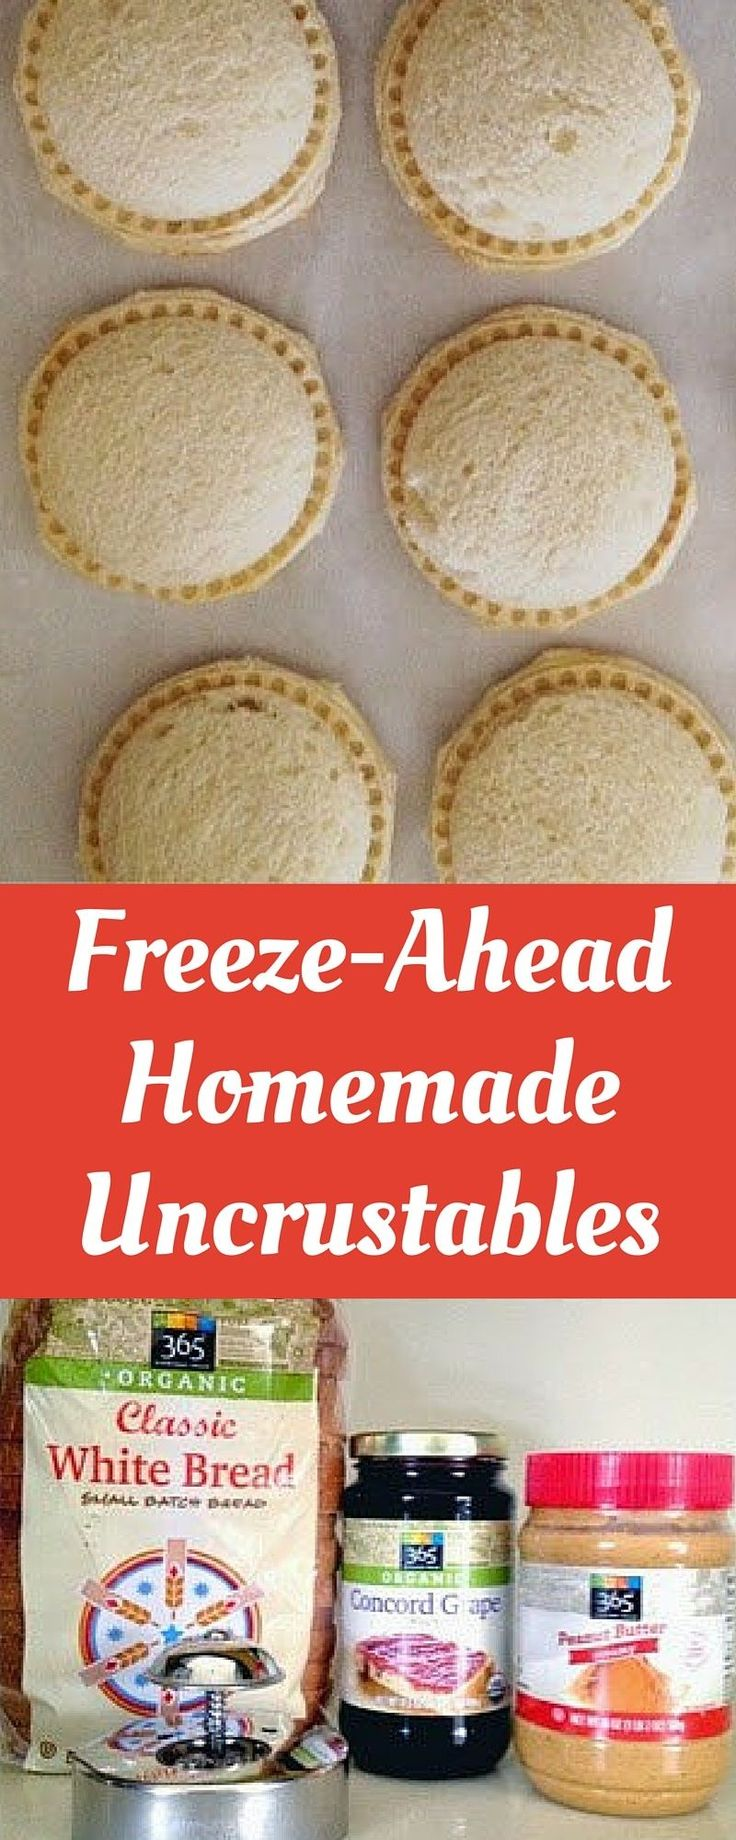 Perfect for back to school! This healthy version takes a few minutes to make and they freeze perfectly!